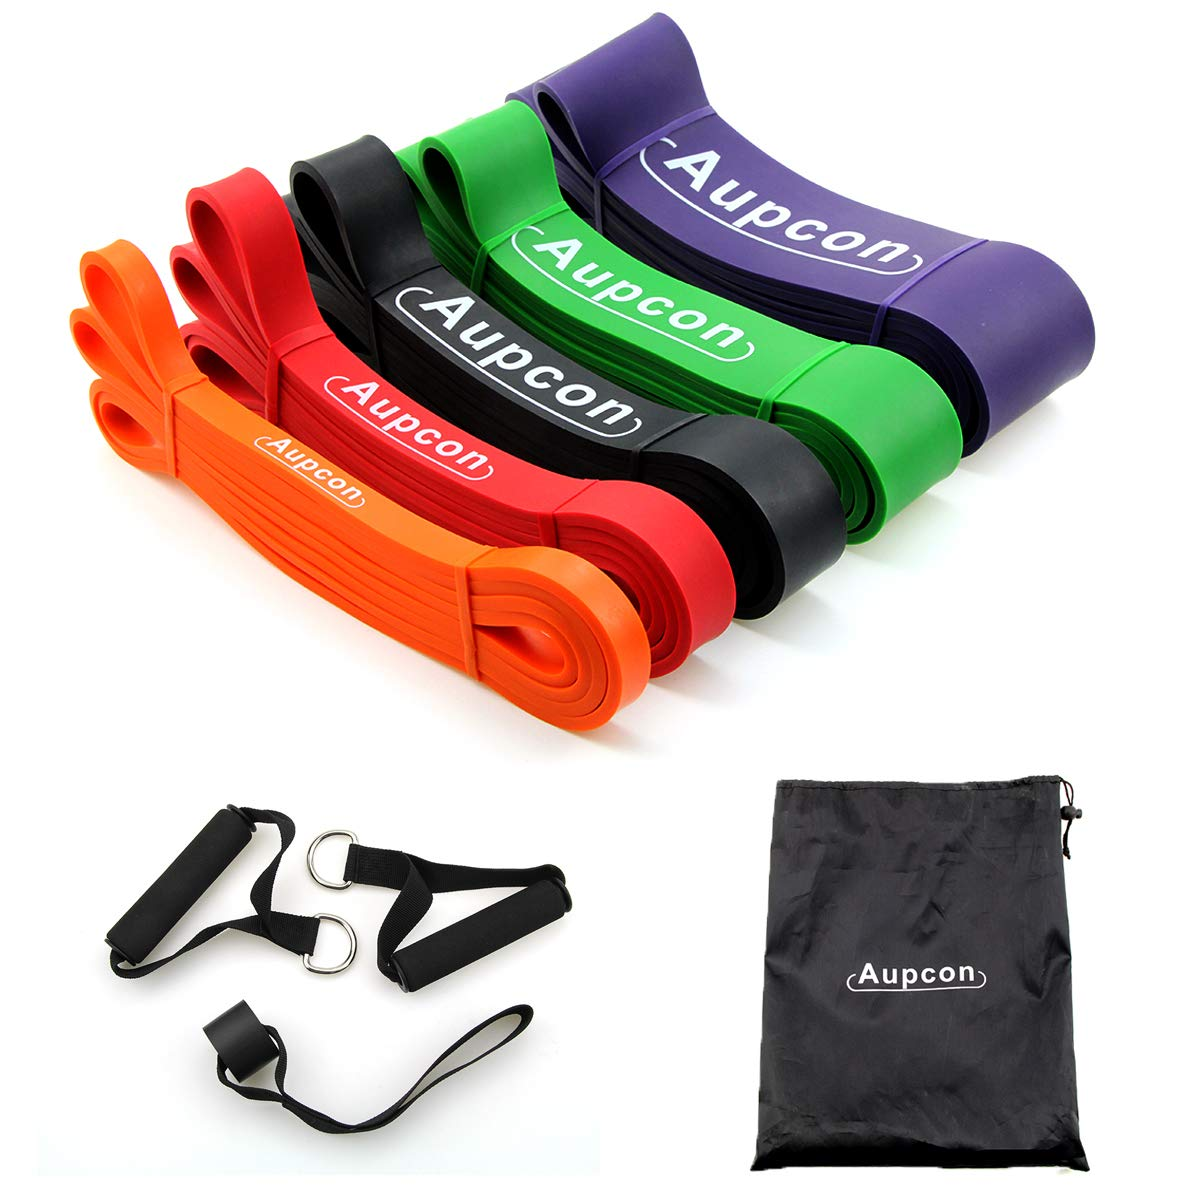 AUPCON Pull Up Assist Bands Resistance Band Exercise Bands Home Fitness, Stretching and Assistance Training Band (#6 Set of 5)